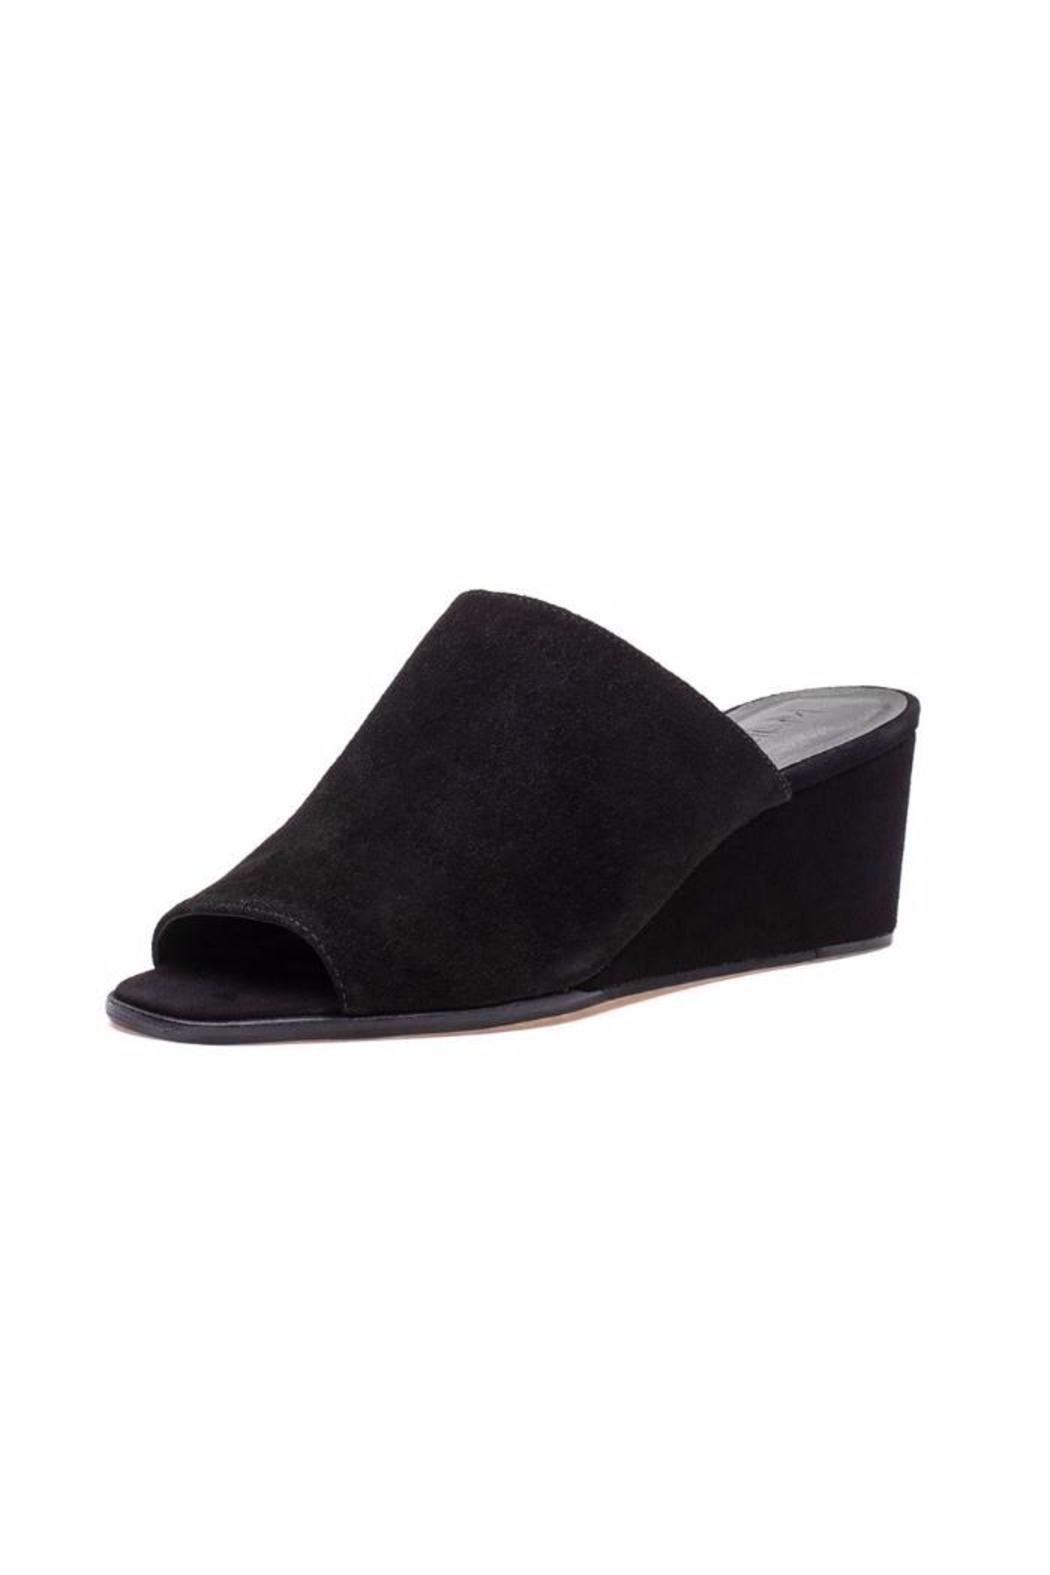 M4D3 Clarah Black Wedges - Main Image